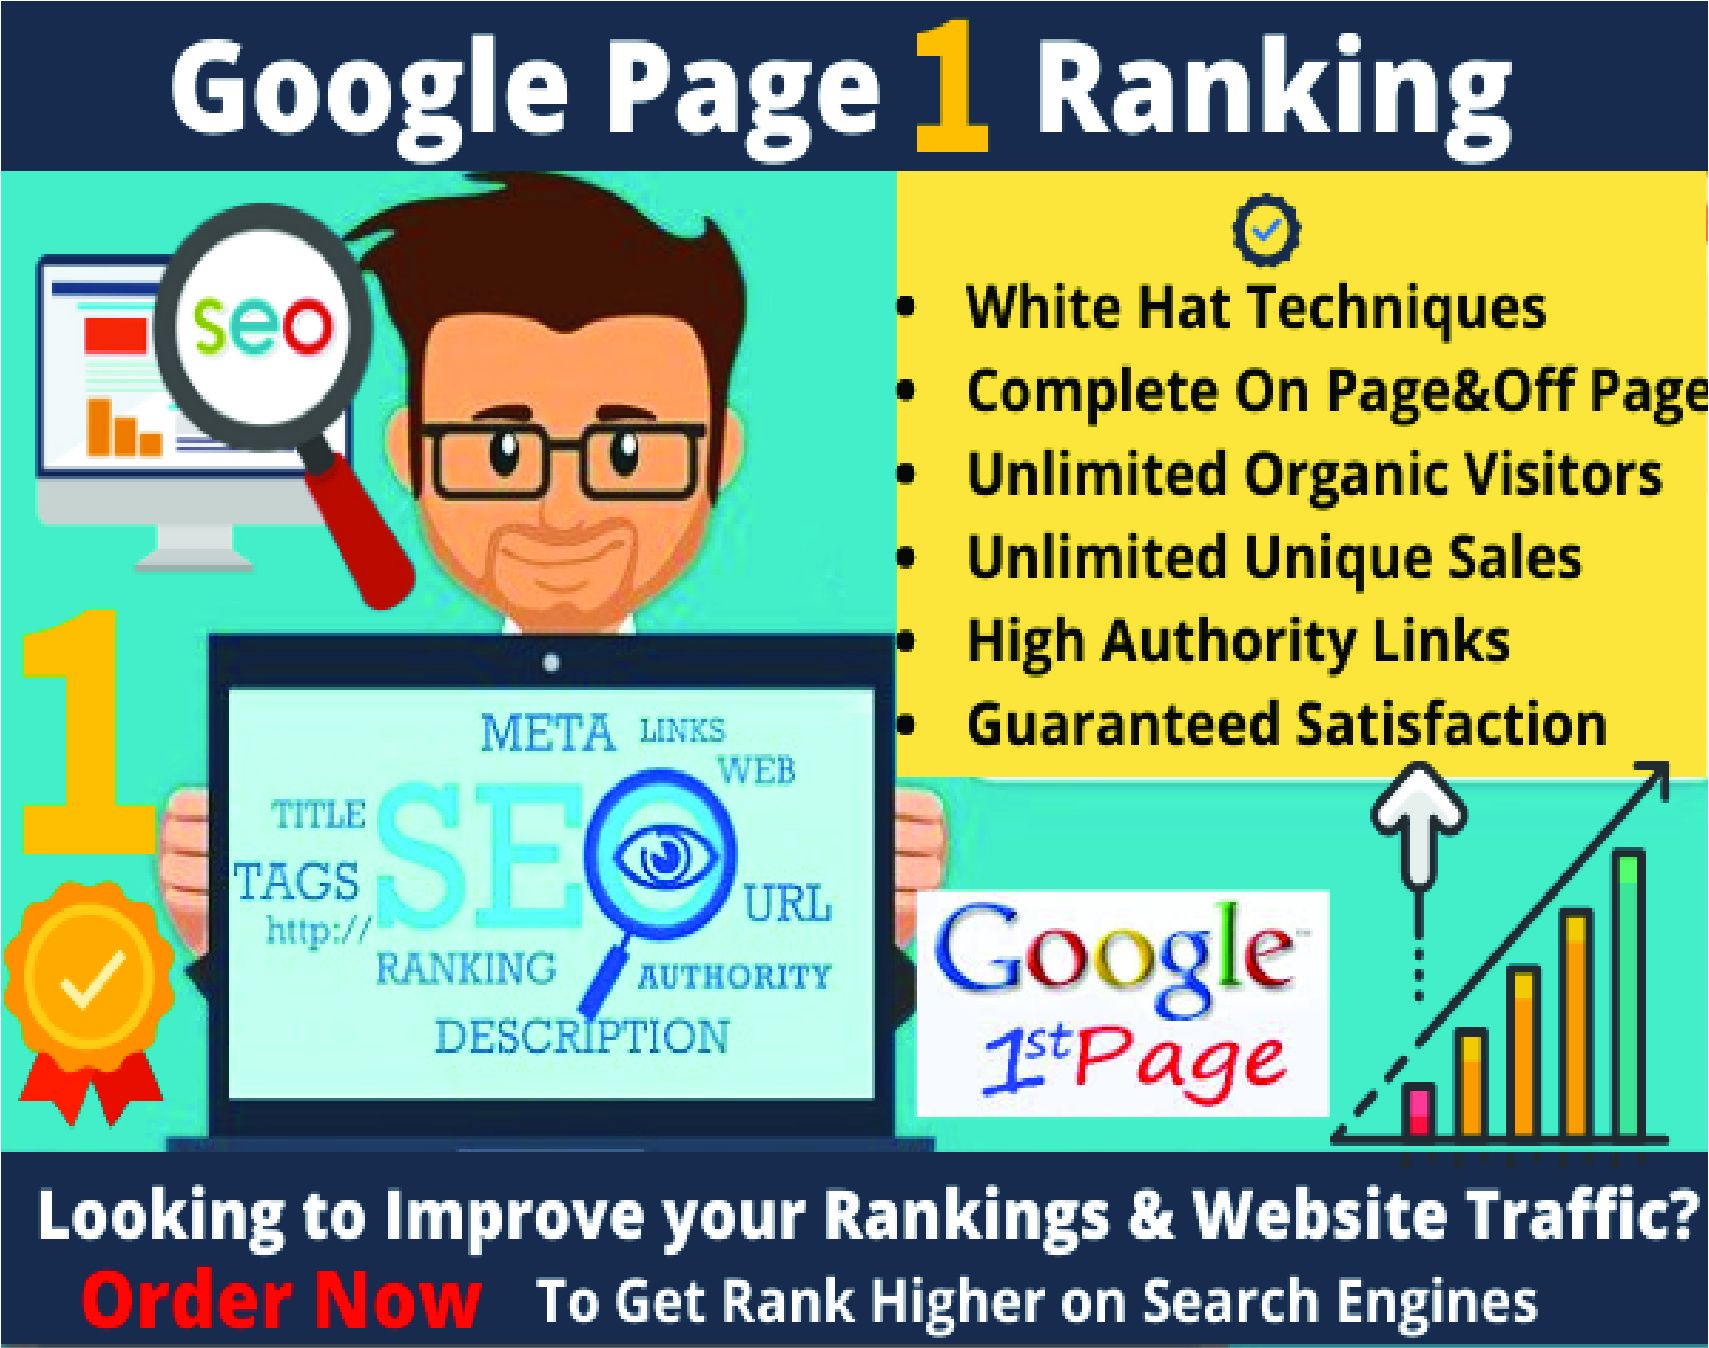 I will rank your website at first page on google